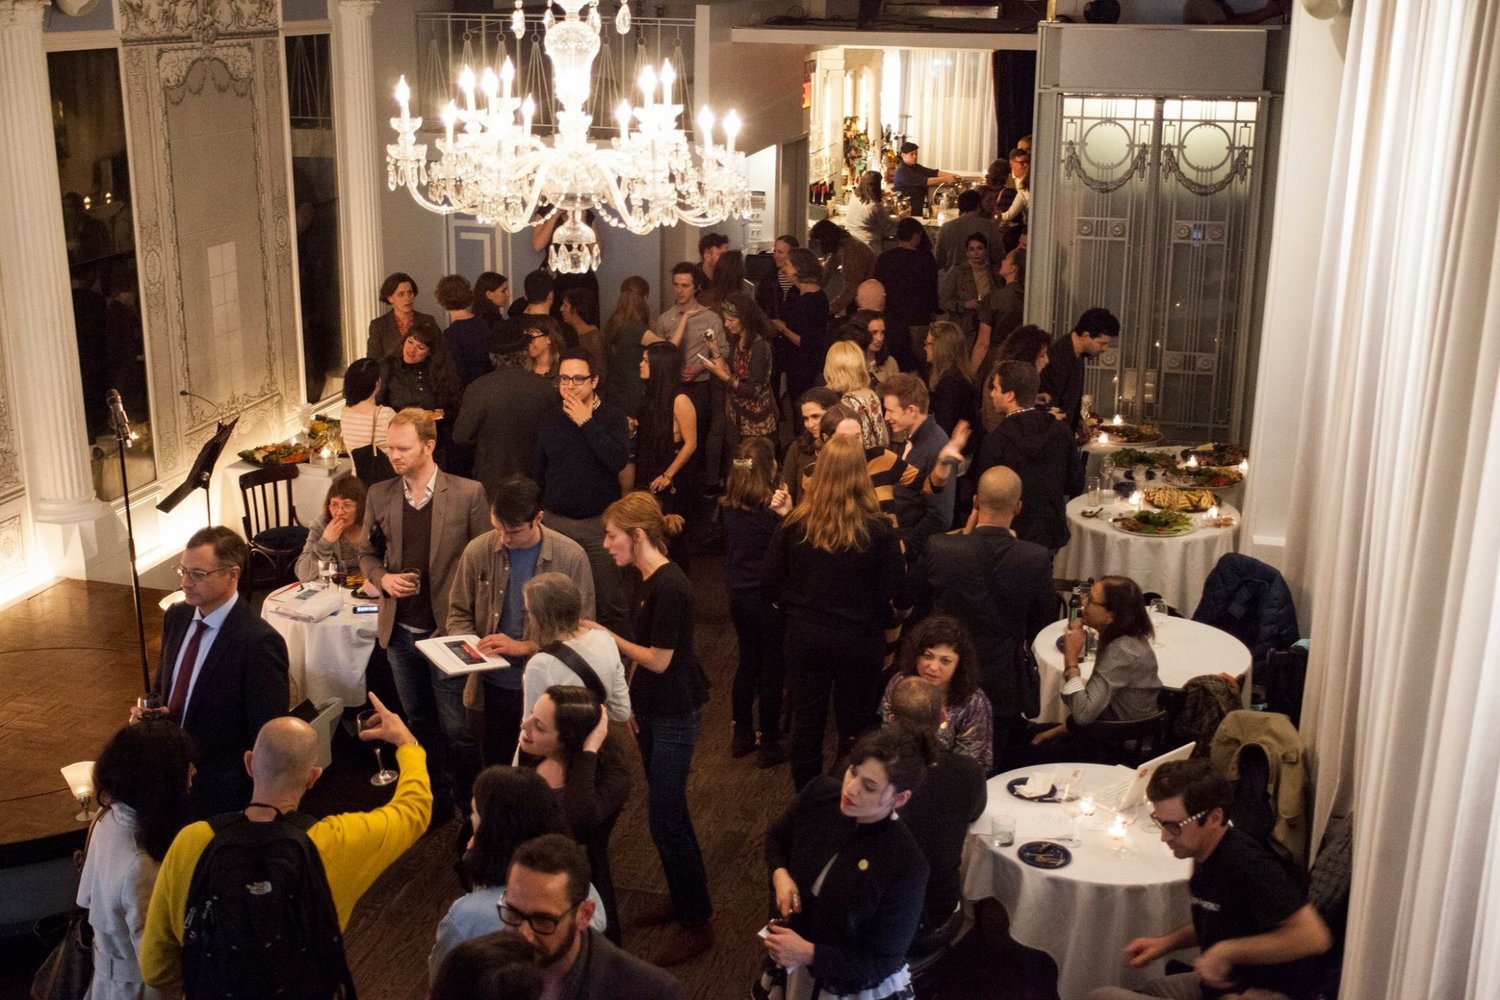 Celebrating the launch of Telephone at the Bowery Poetry Club in Manhattan. Concurrent parties and get-togethers took place all over the world and Telephone artists from all 42 countries were speaking to each other via video chat.